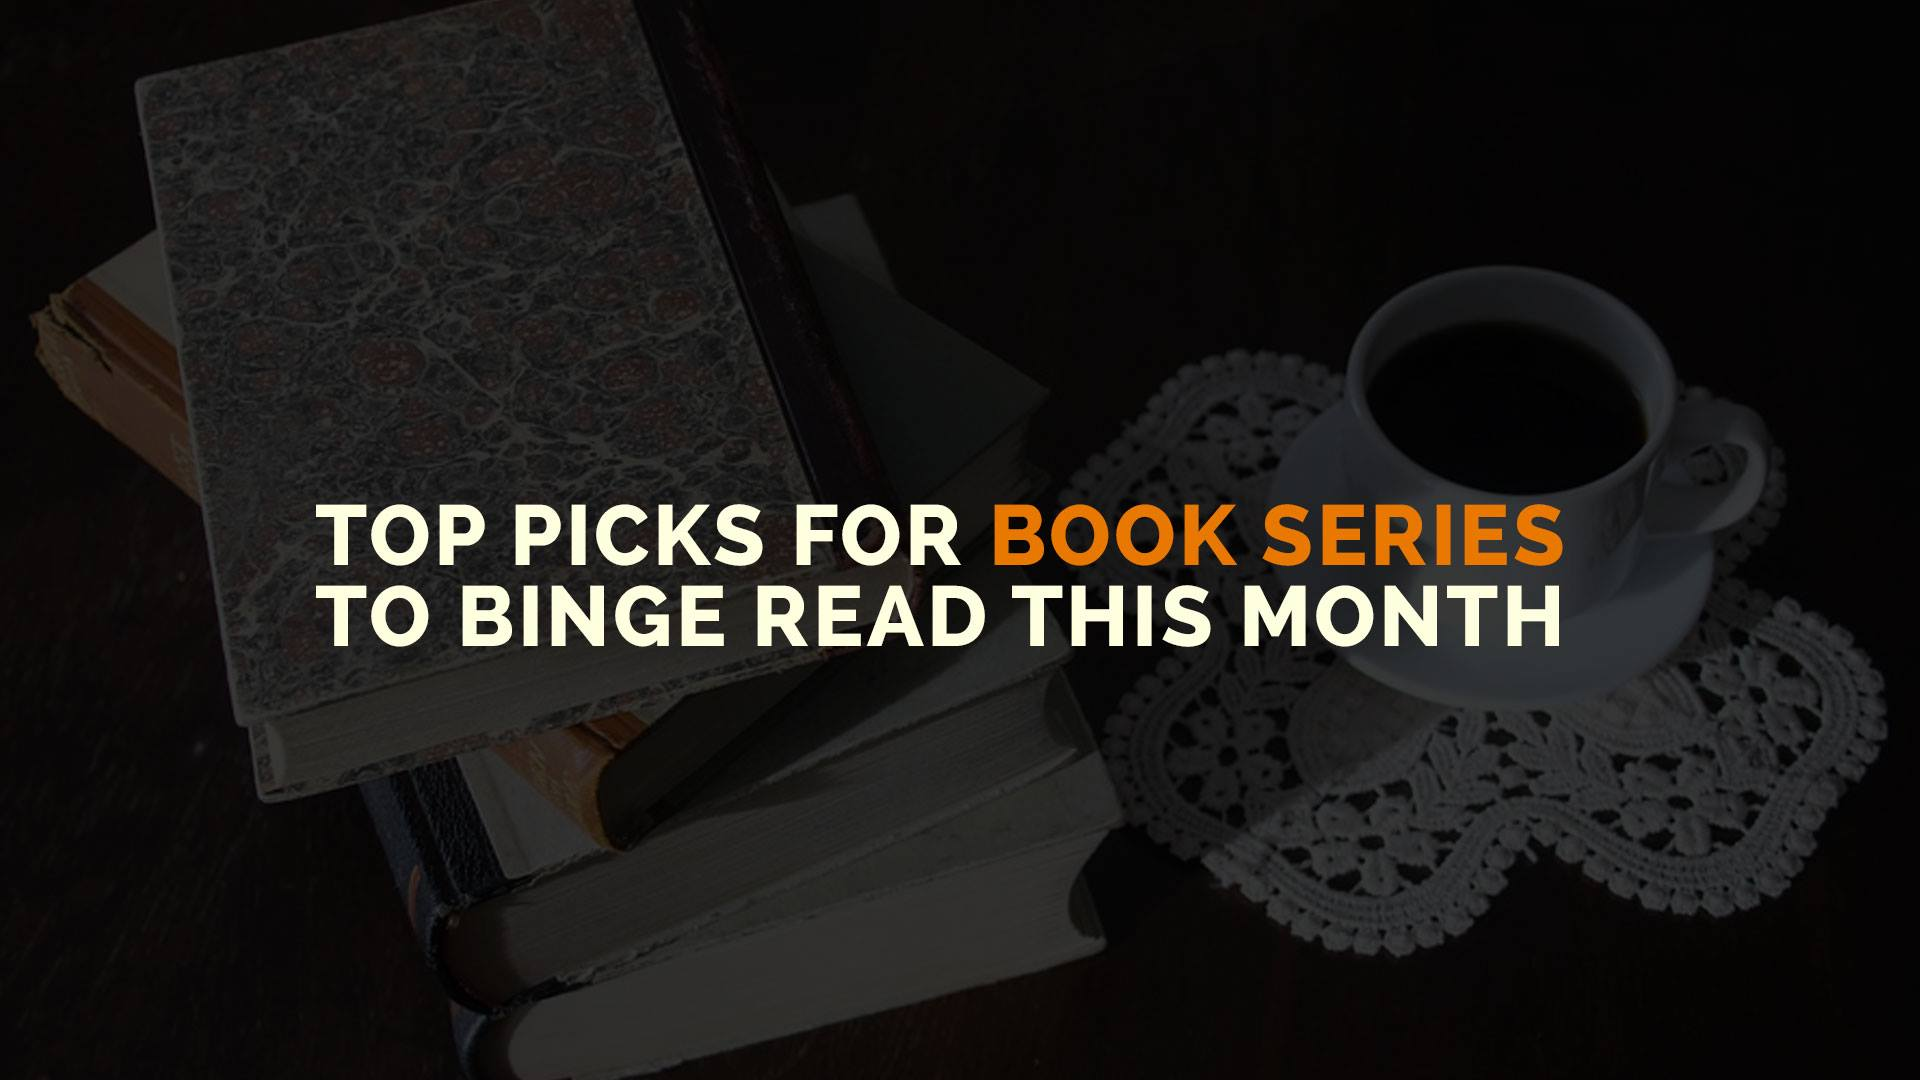 Top Picks for Book Series to Binge Read This Month banner